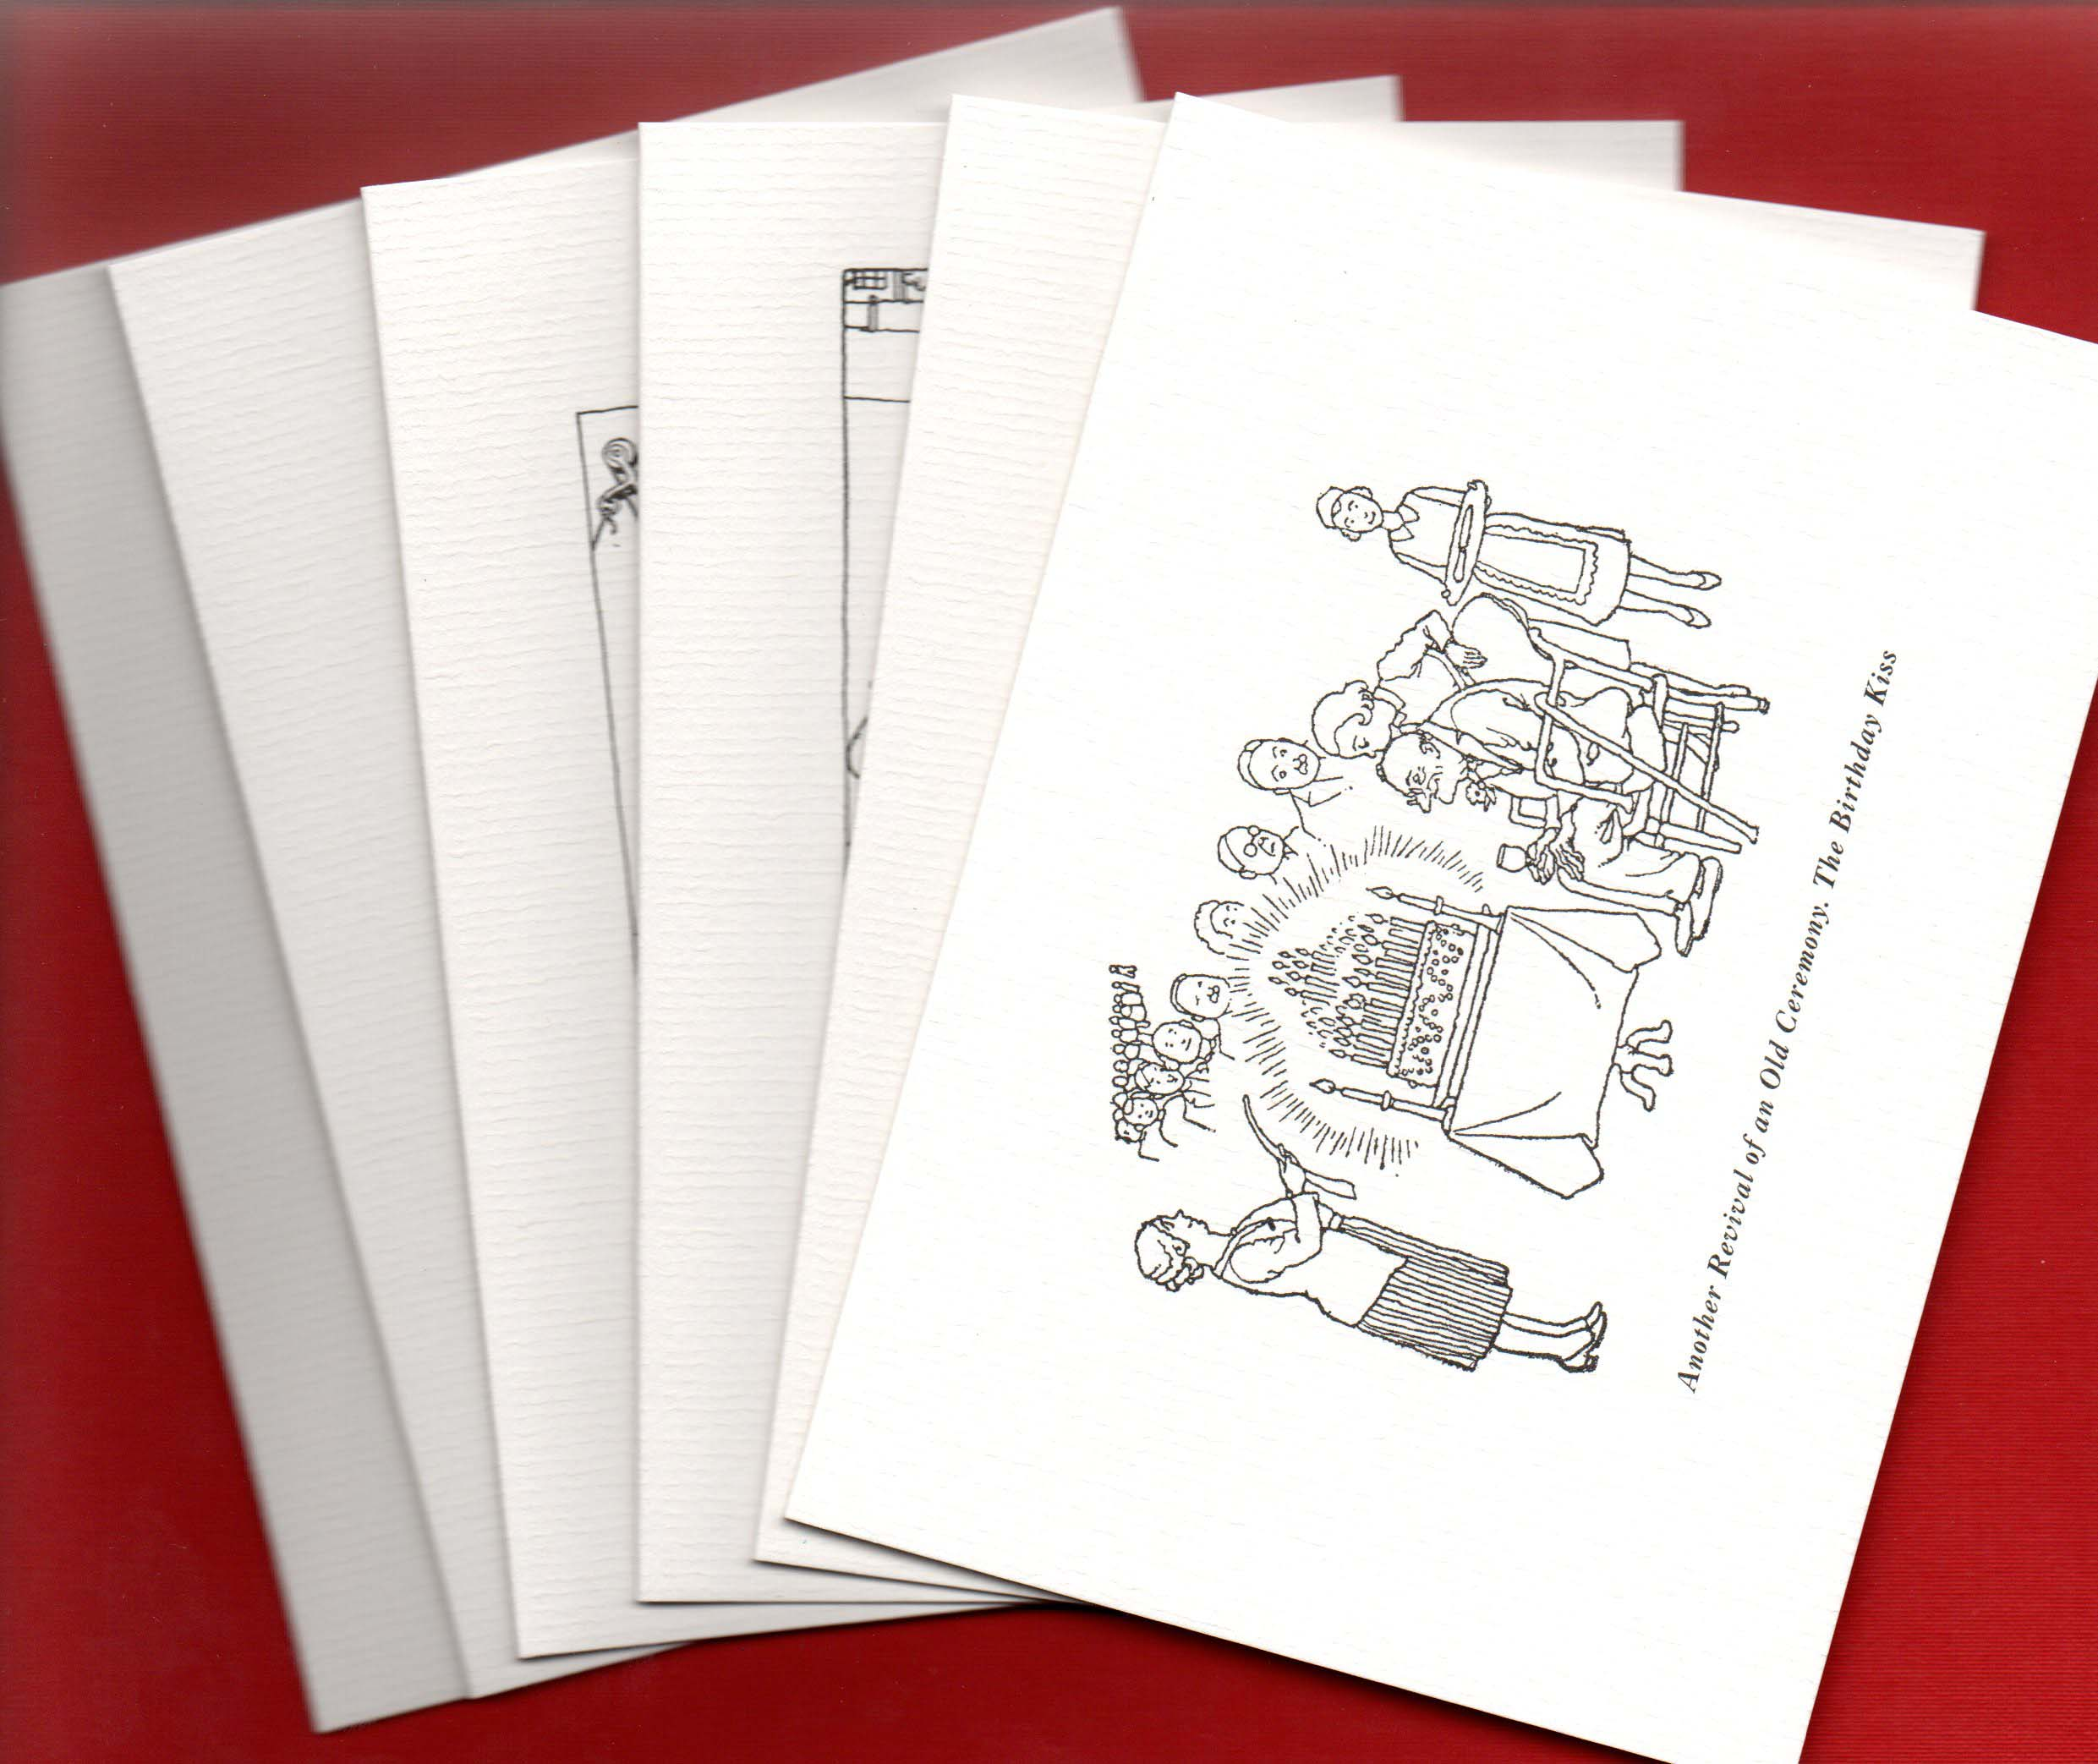 Heath robinson greetings cards sheldrake press heath robinson greetings cards kristyandbryce Images